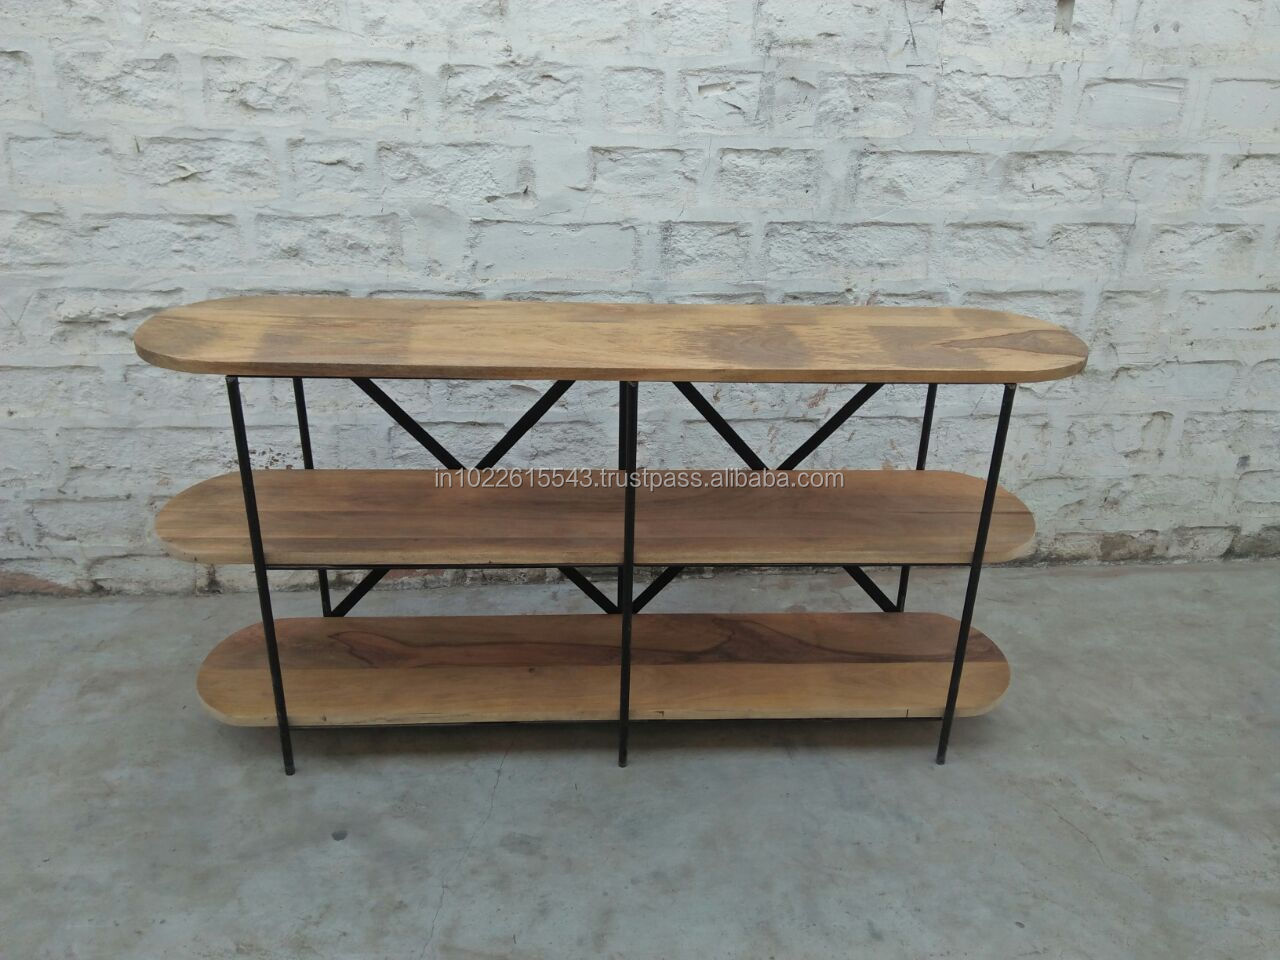 Industrial Multi Shelf Mango Wood Console Table,Vintage Acacia Wood Console  Table With Iron Frame   Buy Antique Wood Console Tables,Industrial Wood ...